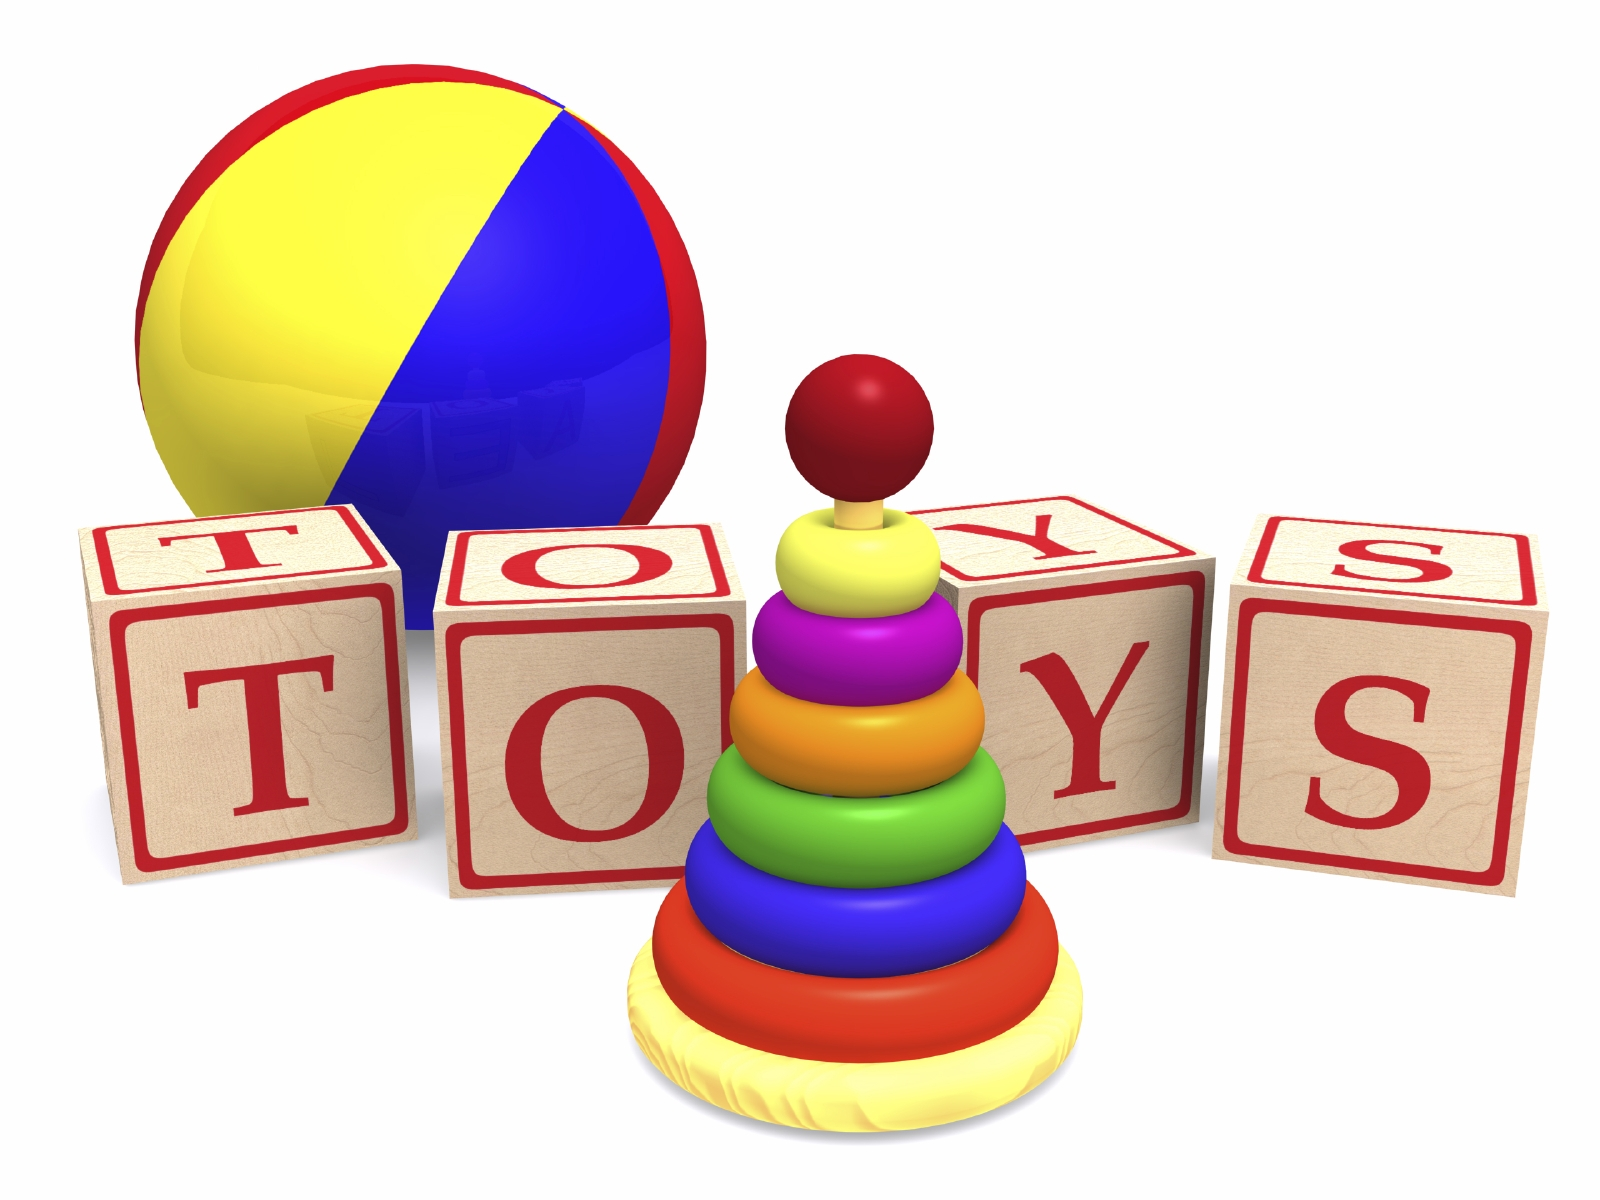 Take on debt to buy assets, not toys